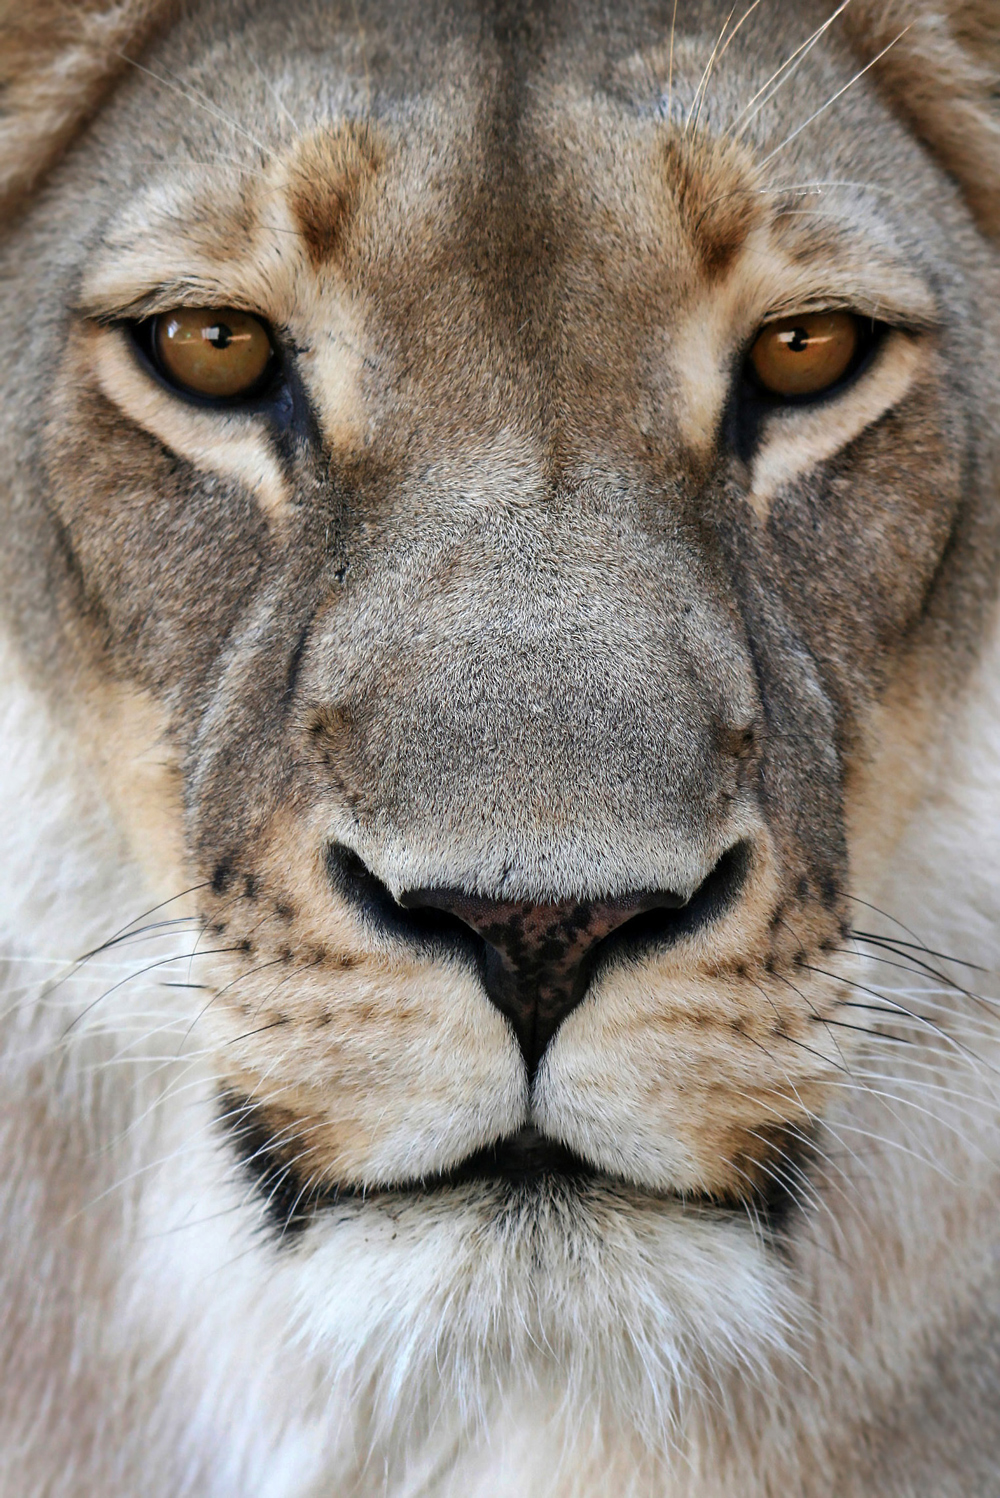 A portrait of a lion in Kruger National Park, South Africa ©Bjorn Persson